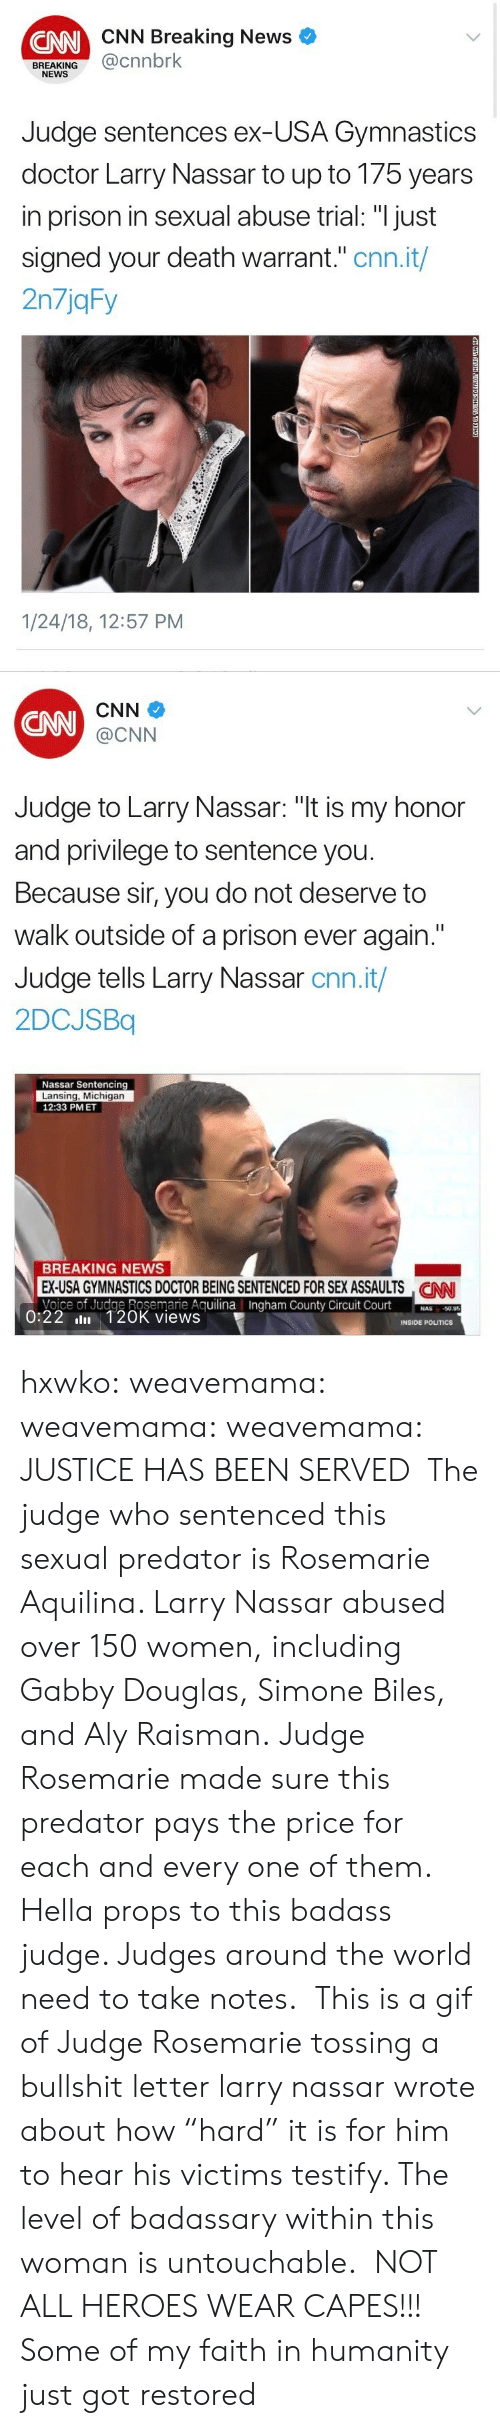 """cnn.com, Crime, and Doctor: CNN Breaking News  CNN  BREAKING@cnnbrk  NEWS  Judge sentences ex-USA Gymnastics  doctor Larry Nassar to up to 175 years  in prison in sexual abuse trial: """"I just  signed your death warrant."""" cnn.it/  2n7jqFy  1/24/18, 12:57 PM   CNN  CNN  @CNN  Judge to Larry Nassar: """"t is my honor  and privilege to sentence you  Because sir, you do not deserve to  walk outside of a prison ever again.""""  Judge tells Larry Nassar cnn.it/  2DCJSBq  Nassar Sentencing  Lansing, Michigan  12:33 PMET  BREAKING NEWS  EX-USA GYMNASTICS DOCTOR BEING SENTENCED FOR SEX ASSAULTS NN  Voice of Judge Rosemarie AguilinaIngham County Circuit Court0  CAN  County  50.95  0:22 